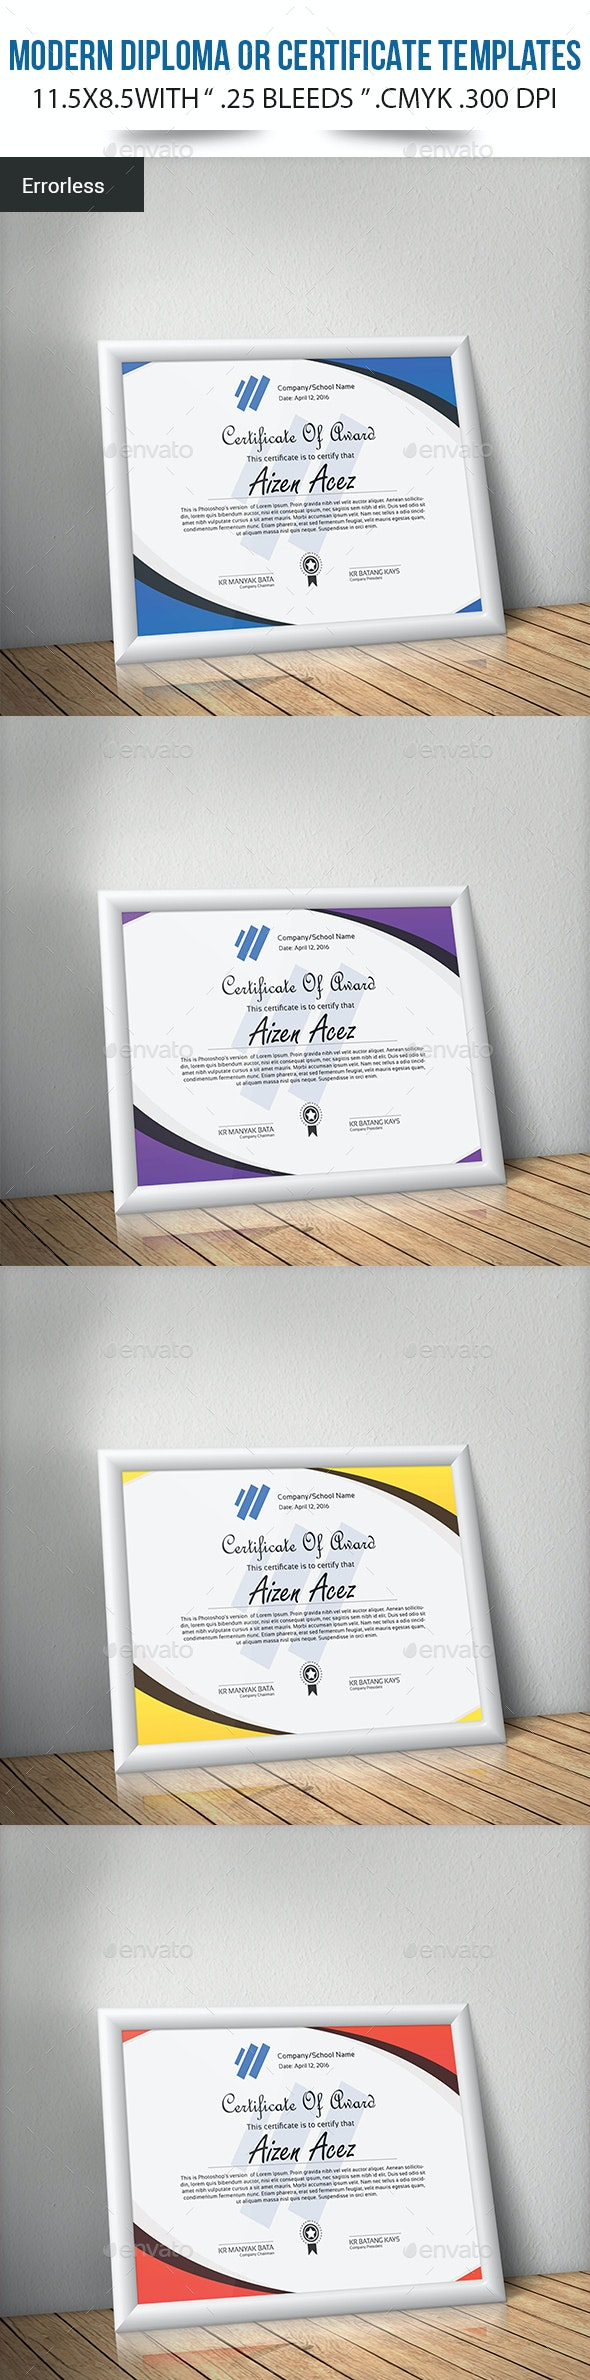 Modern Diploma or Certificate Templates - Certificates Stationery